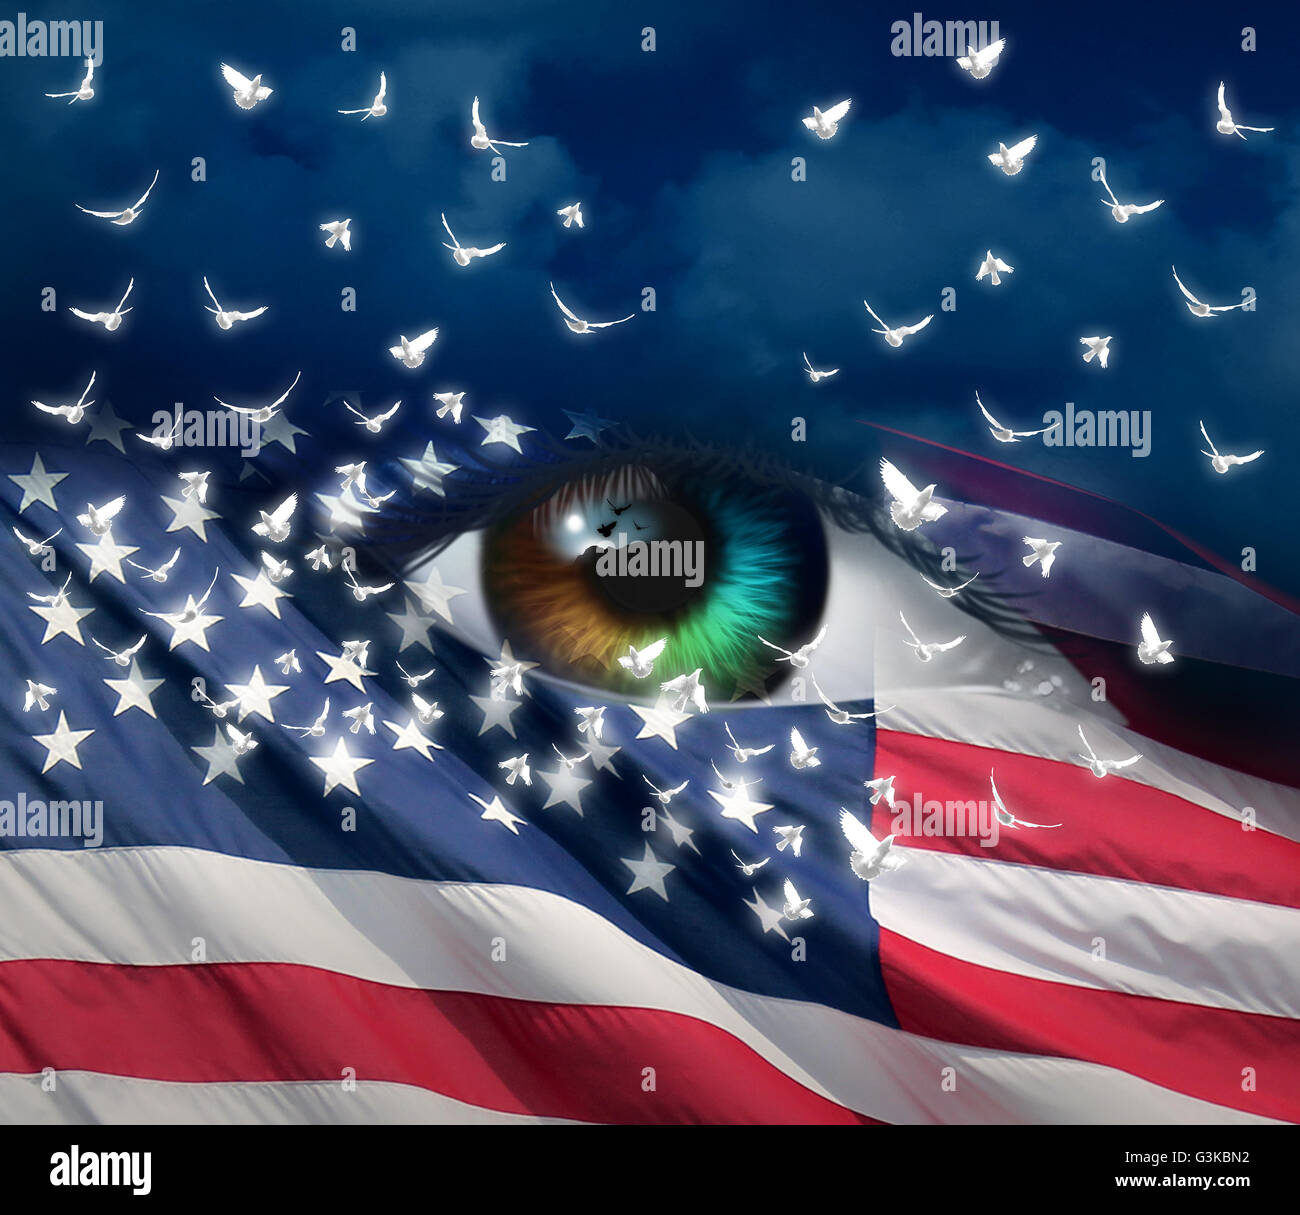 Grief and sorrow in America concept as a diverse human eye with the flag of the United Staes with doves emerging Stock Photo